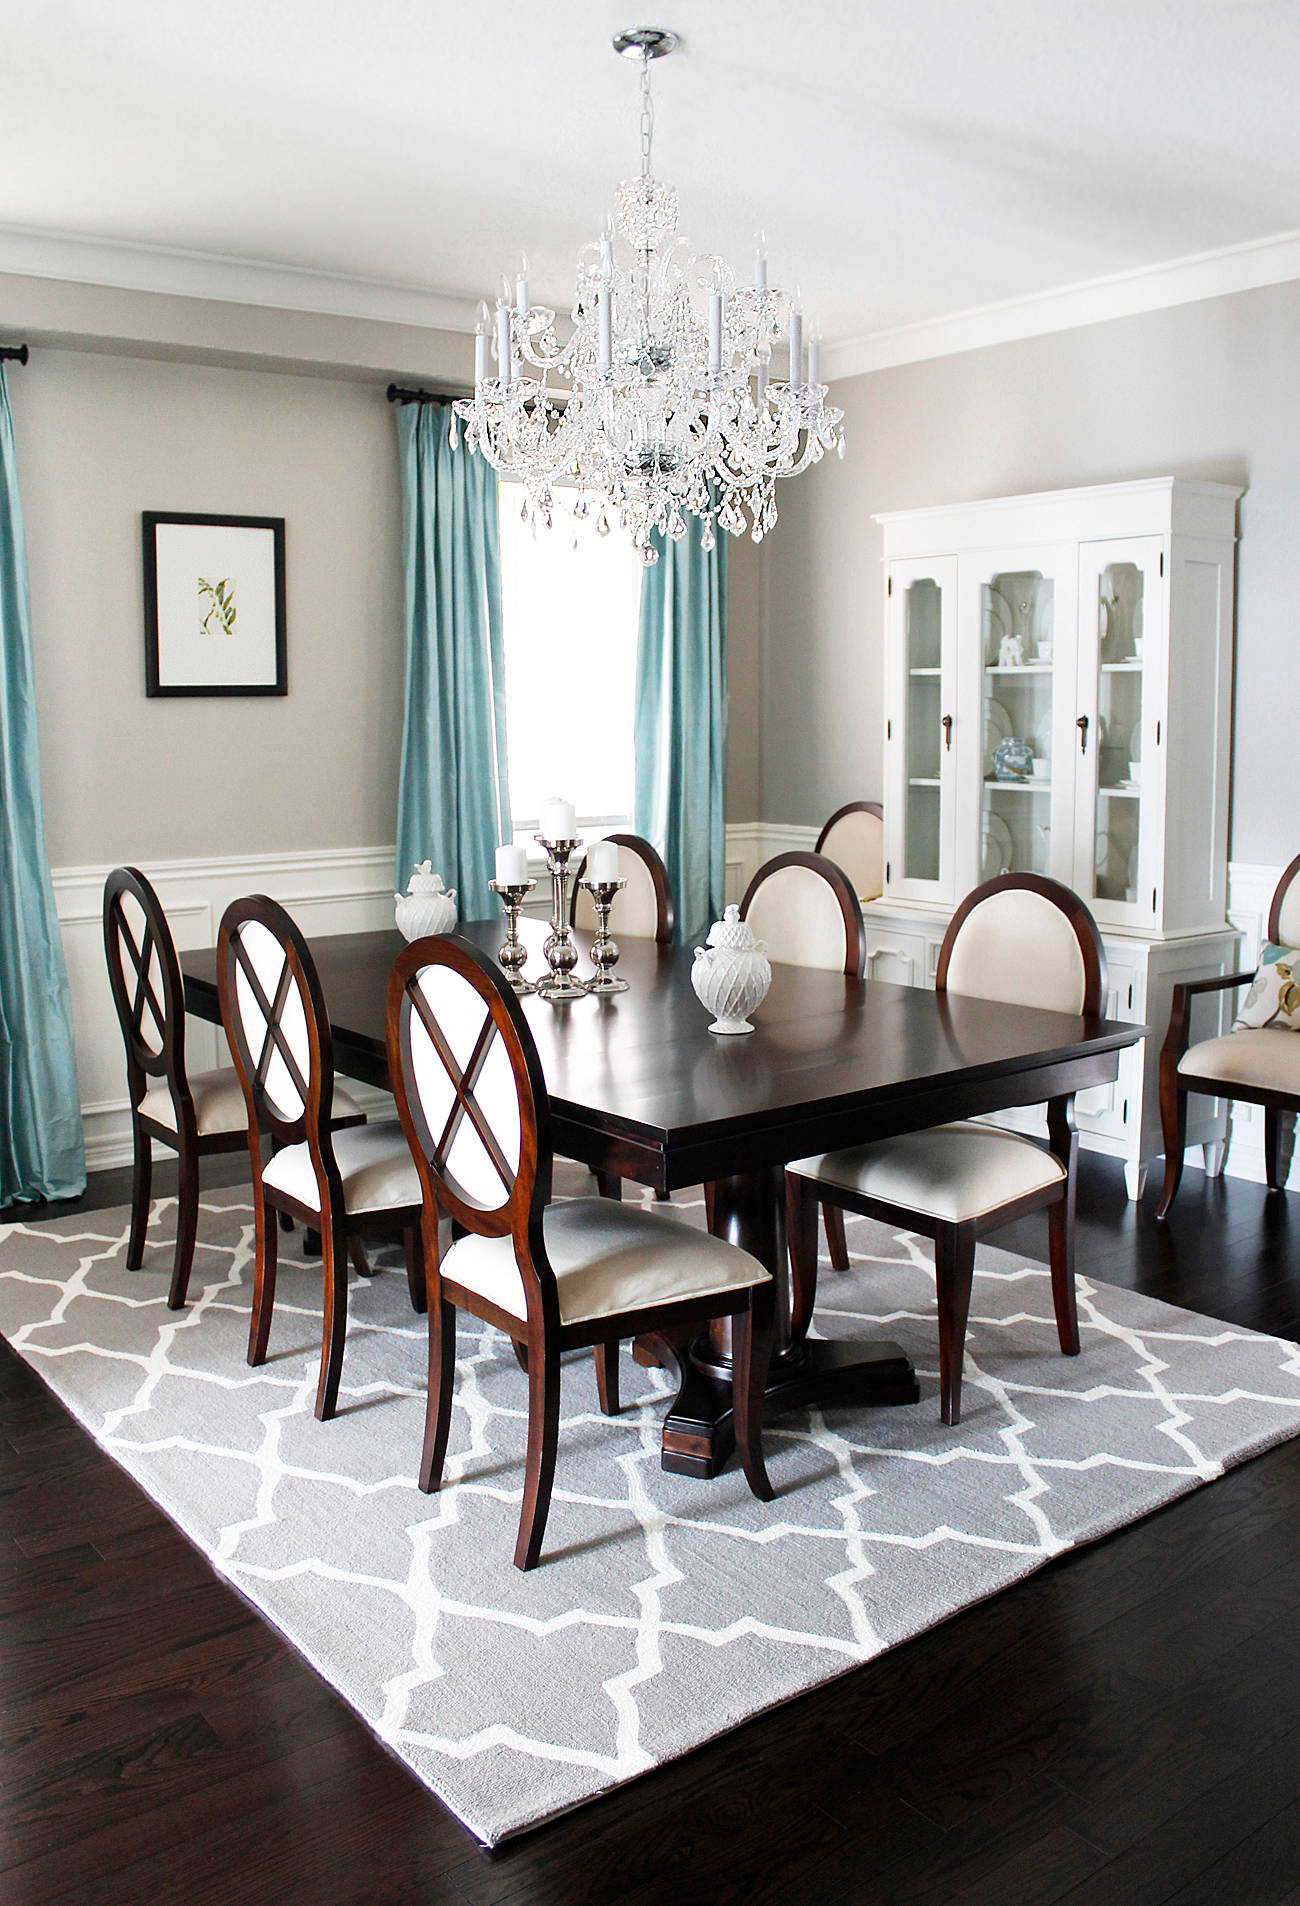 Dining Room Chandelier With Dining Table Plus Upholstered Dining Chairs And Modern Rugs With Hardwood Floorin Also Hanging Curtains With Wainscoting